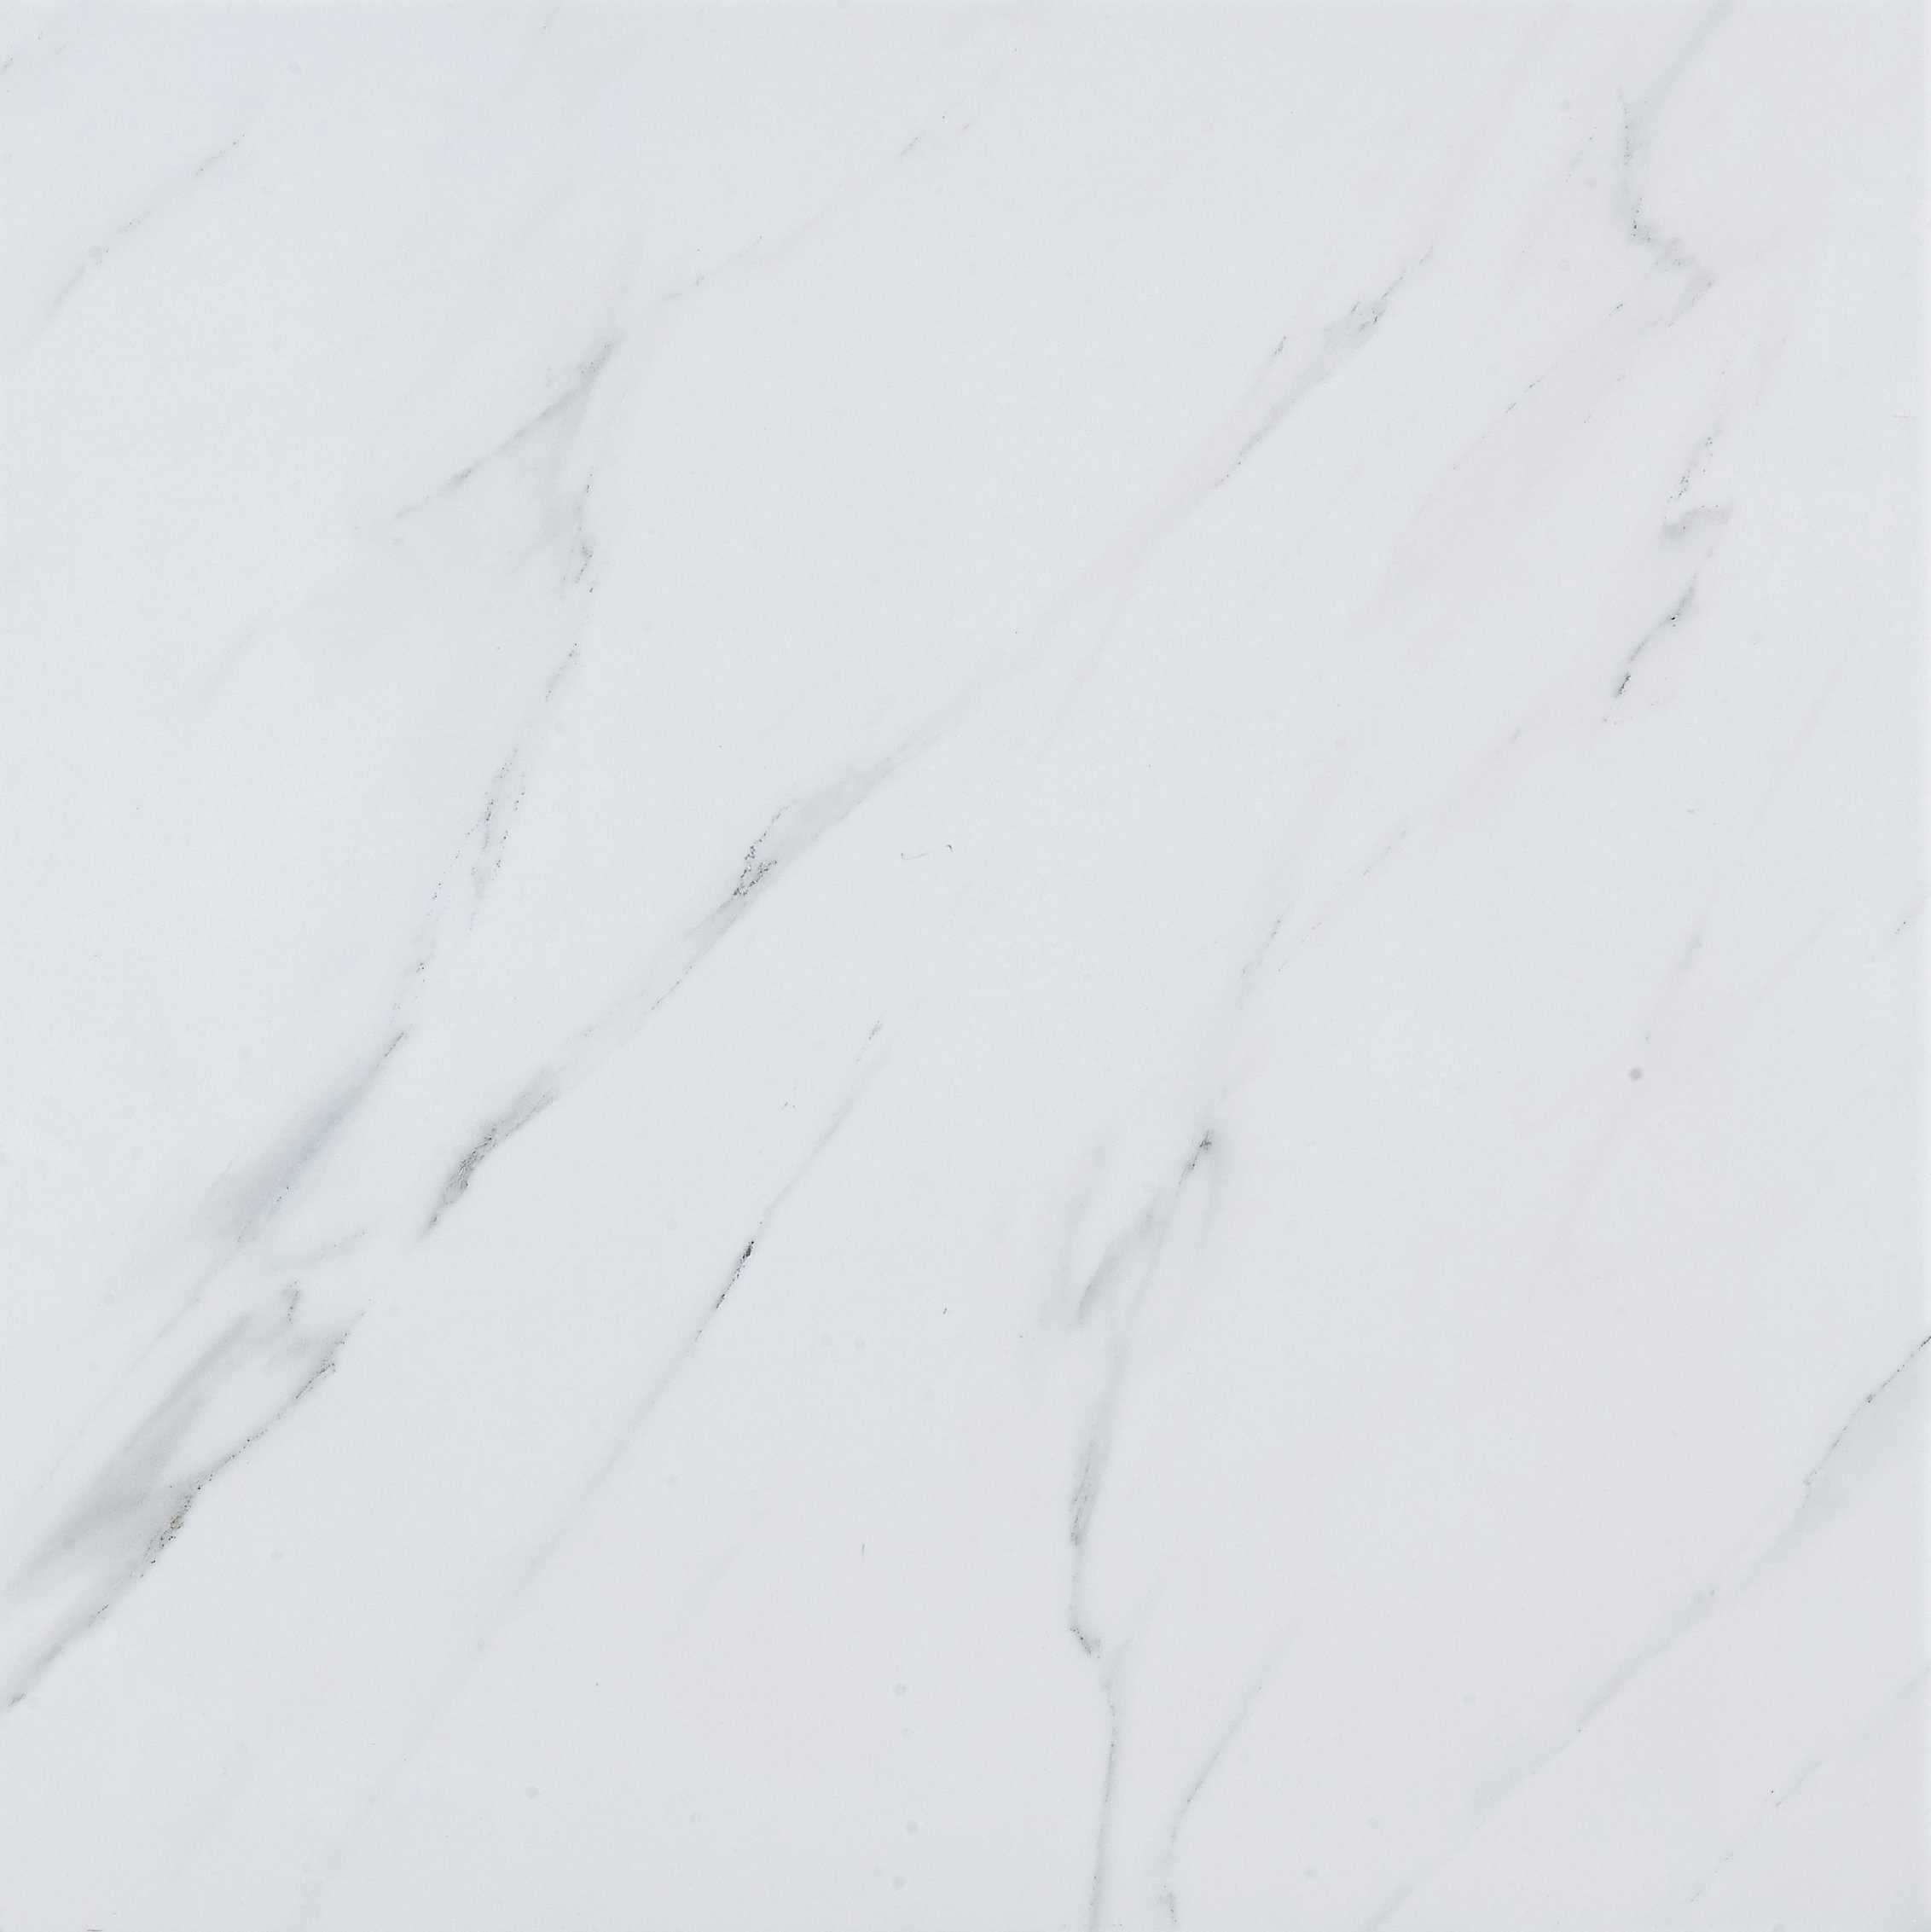 China fujian low price new design discontinued porcelain ceramic fujian low price new design discontinued porcelain ceramic floor tile dailygadgetfo Images